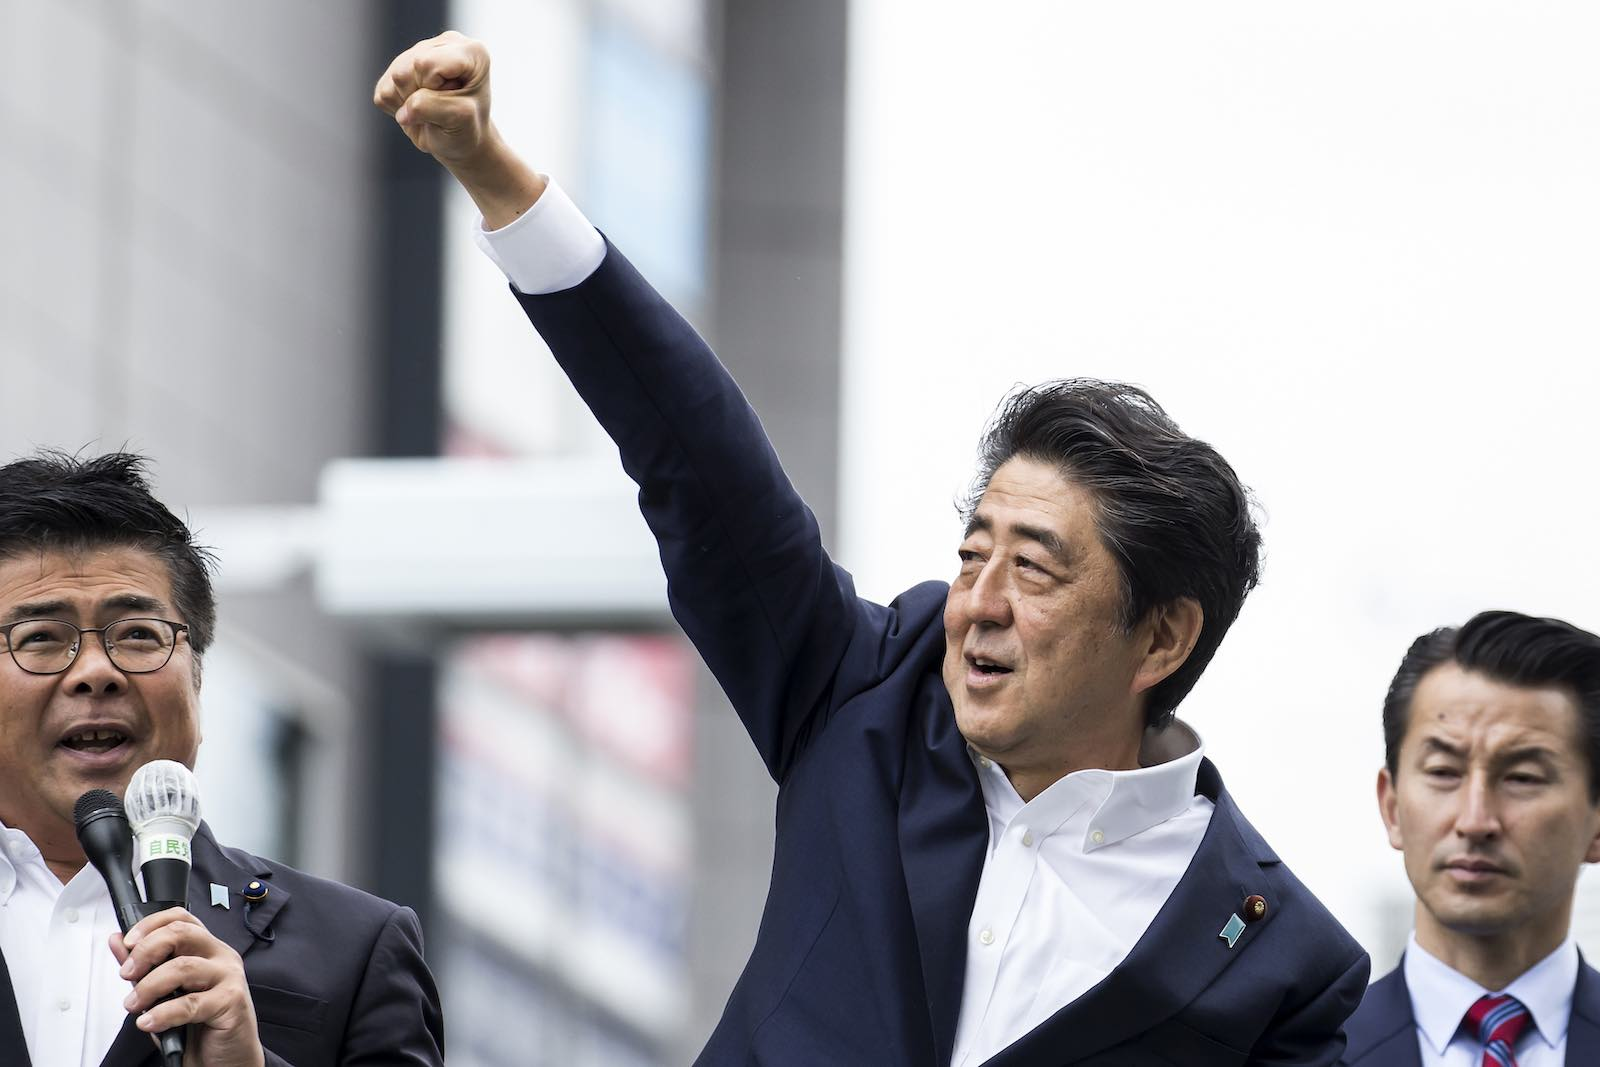 No other Japanese leader has spent as much political capital as Shinzo Abe on this politically controversial project to amend the constitution (Photo: Tomohiro Ohsumi/Getty)